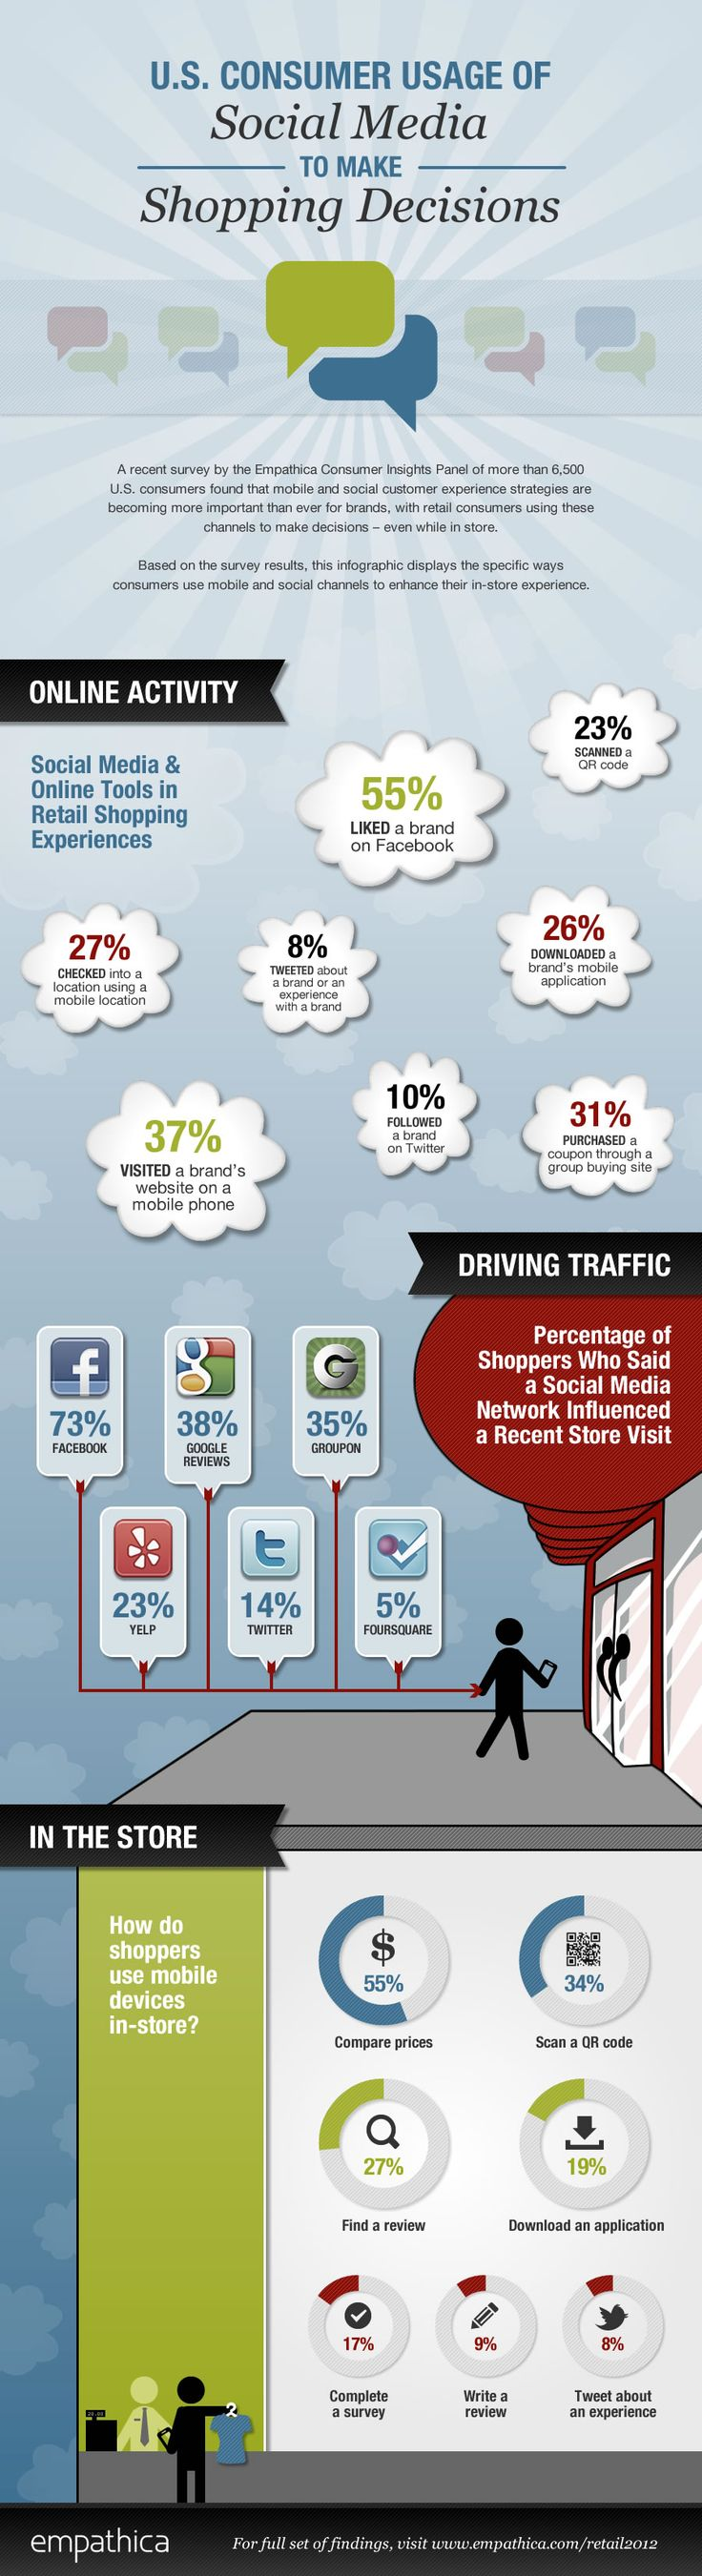 How U.S. consumers use social media to make shopping decisions.